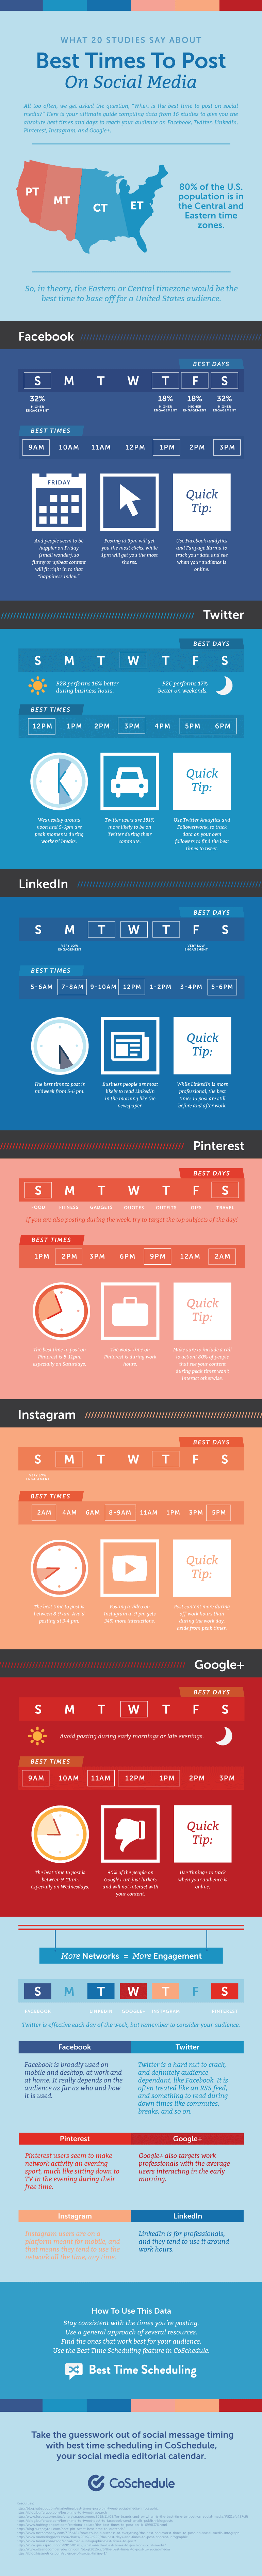 best-time-to-post-on-social-media-infographic